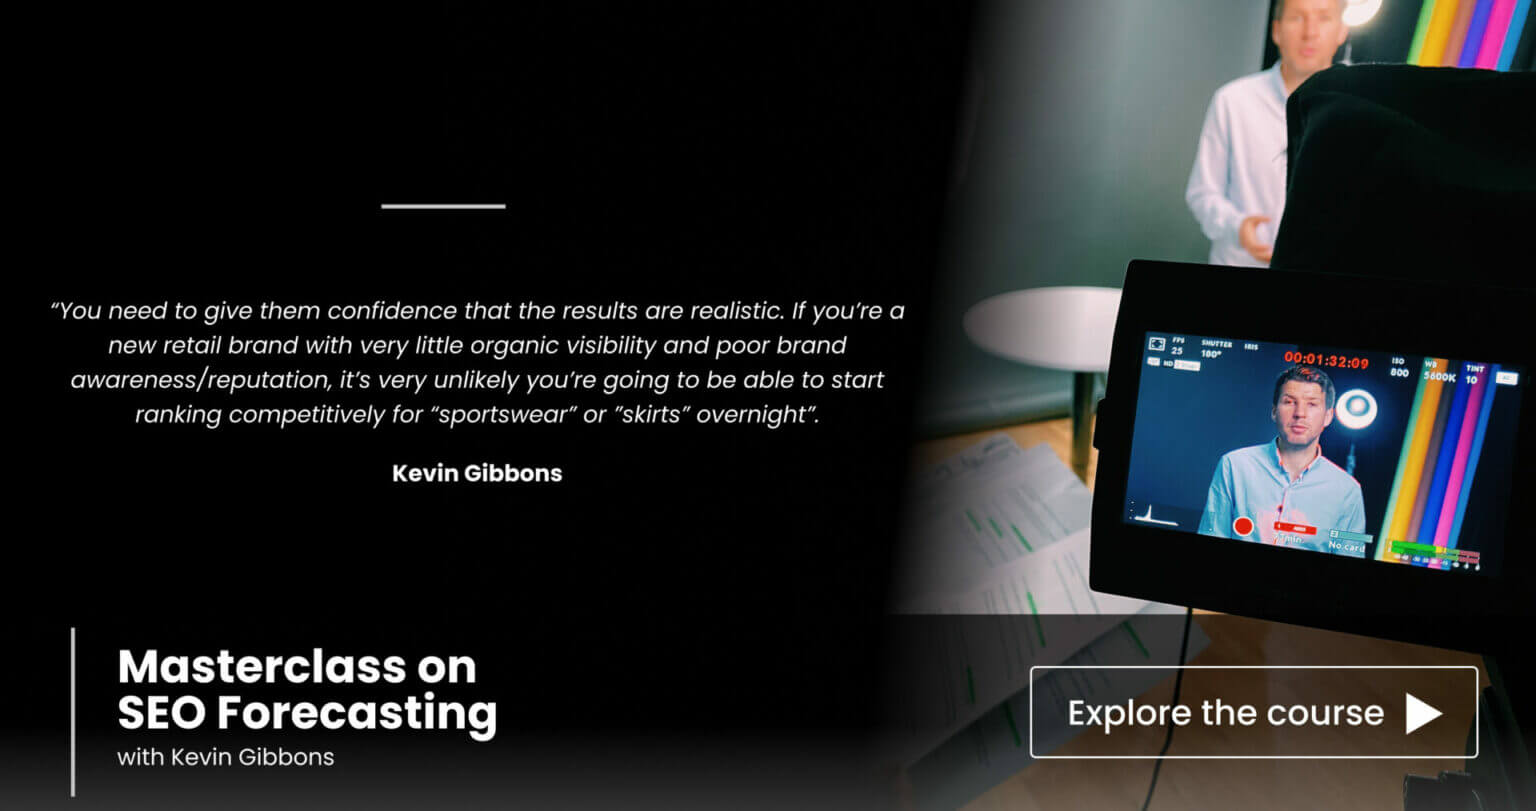 Masterclass on SEO Forecasting with Kevin Gibbons